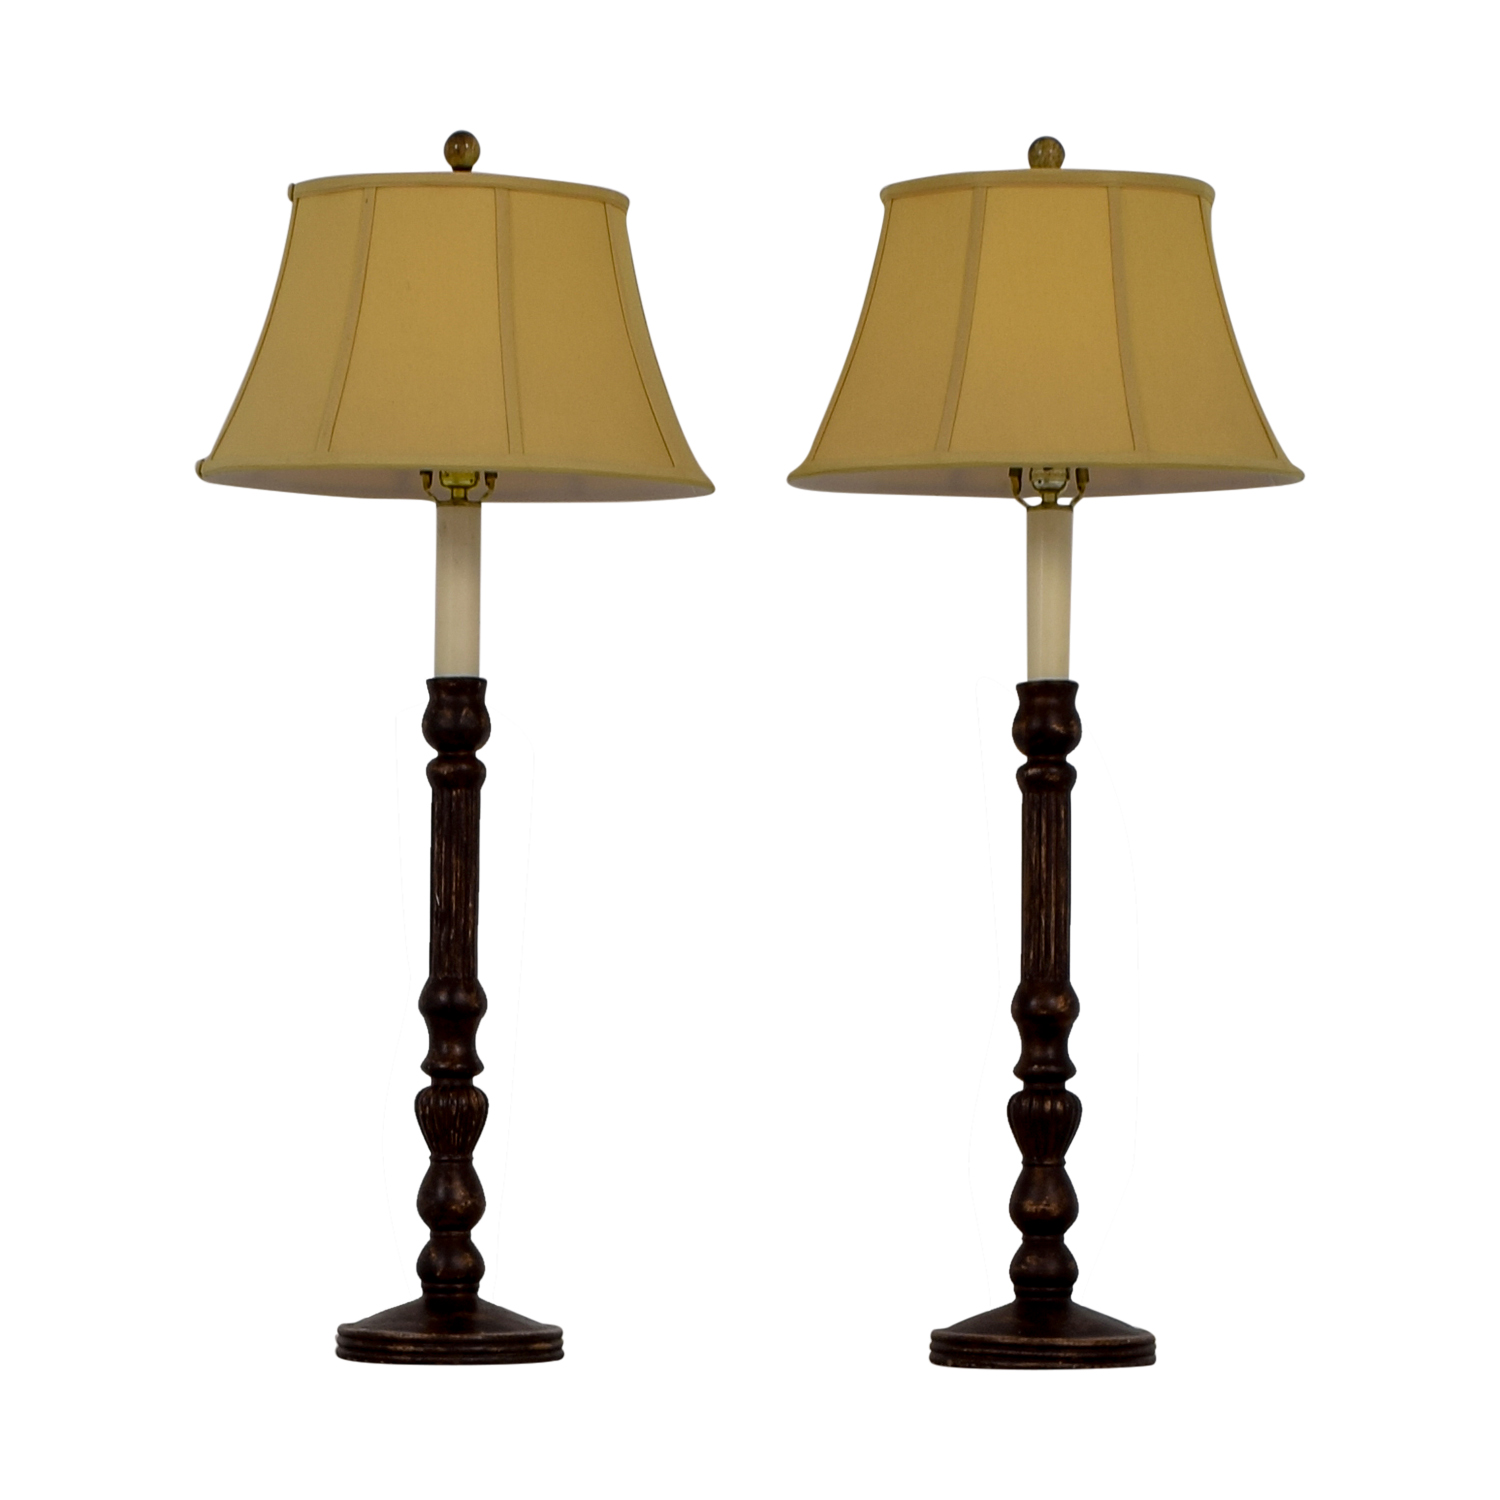 buy Barbara Cosgrove Distressed Tall Table Lamps with Silk Shades Barbara Cosgrove Lamps